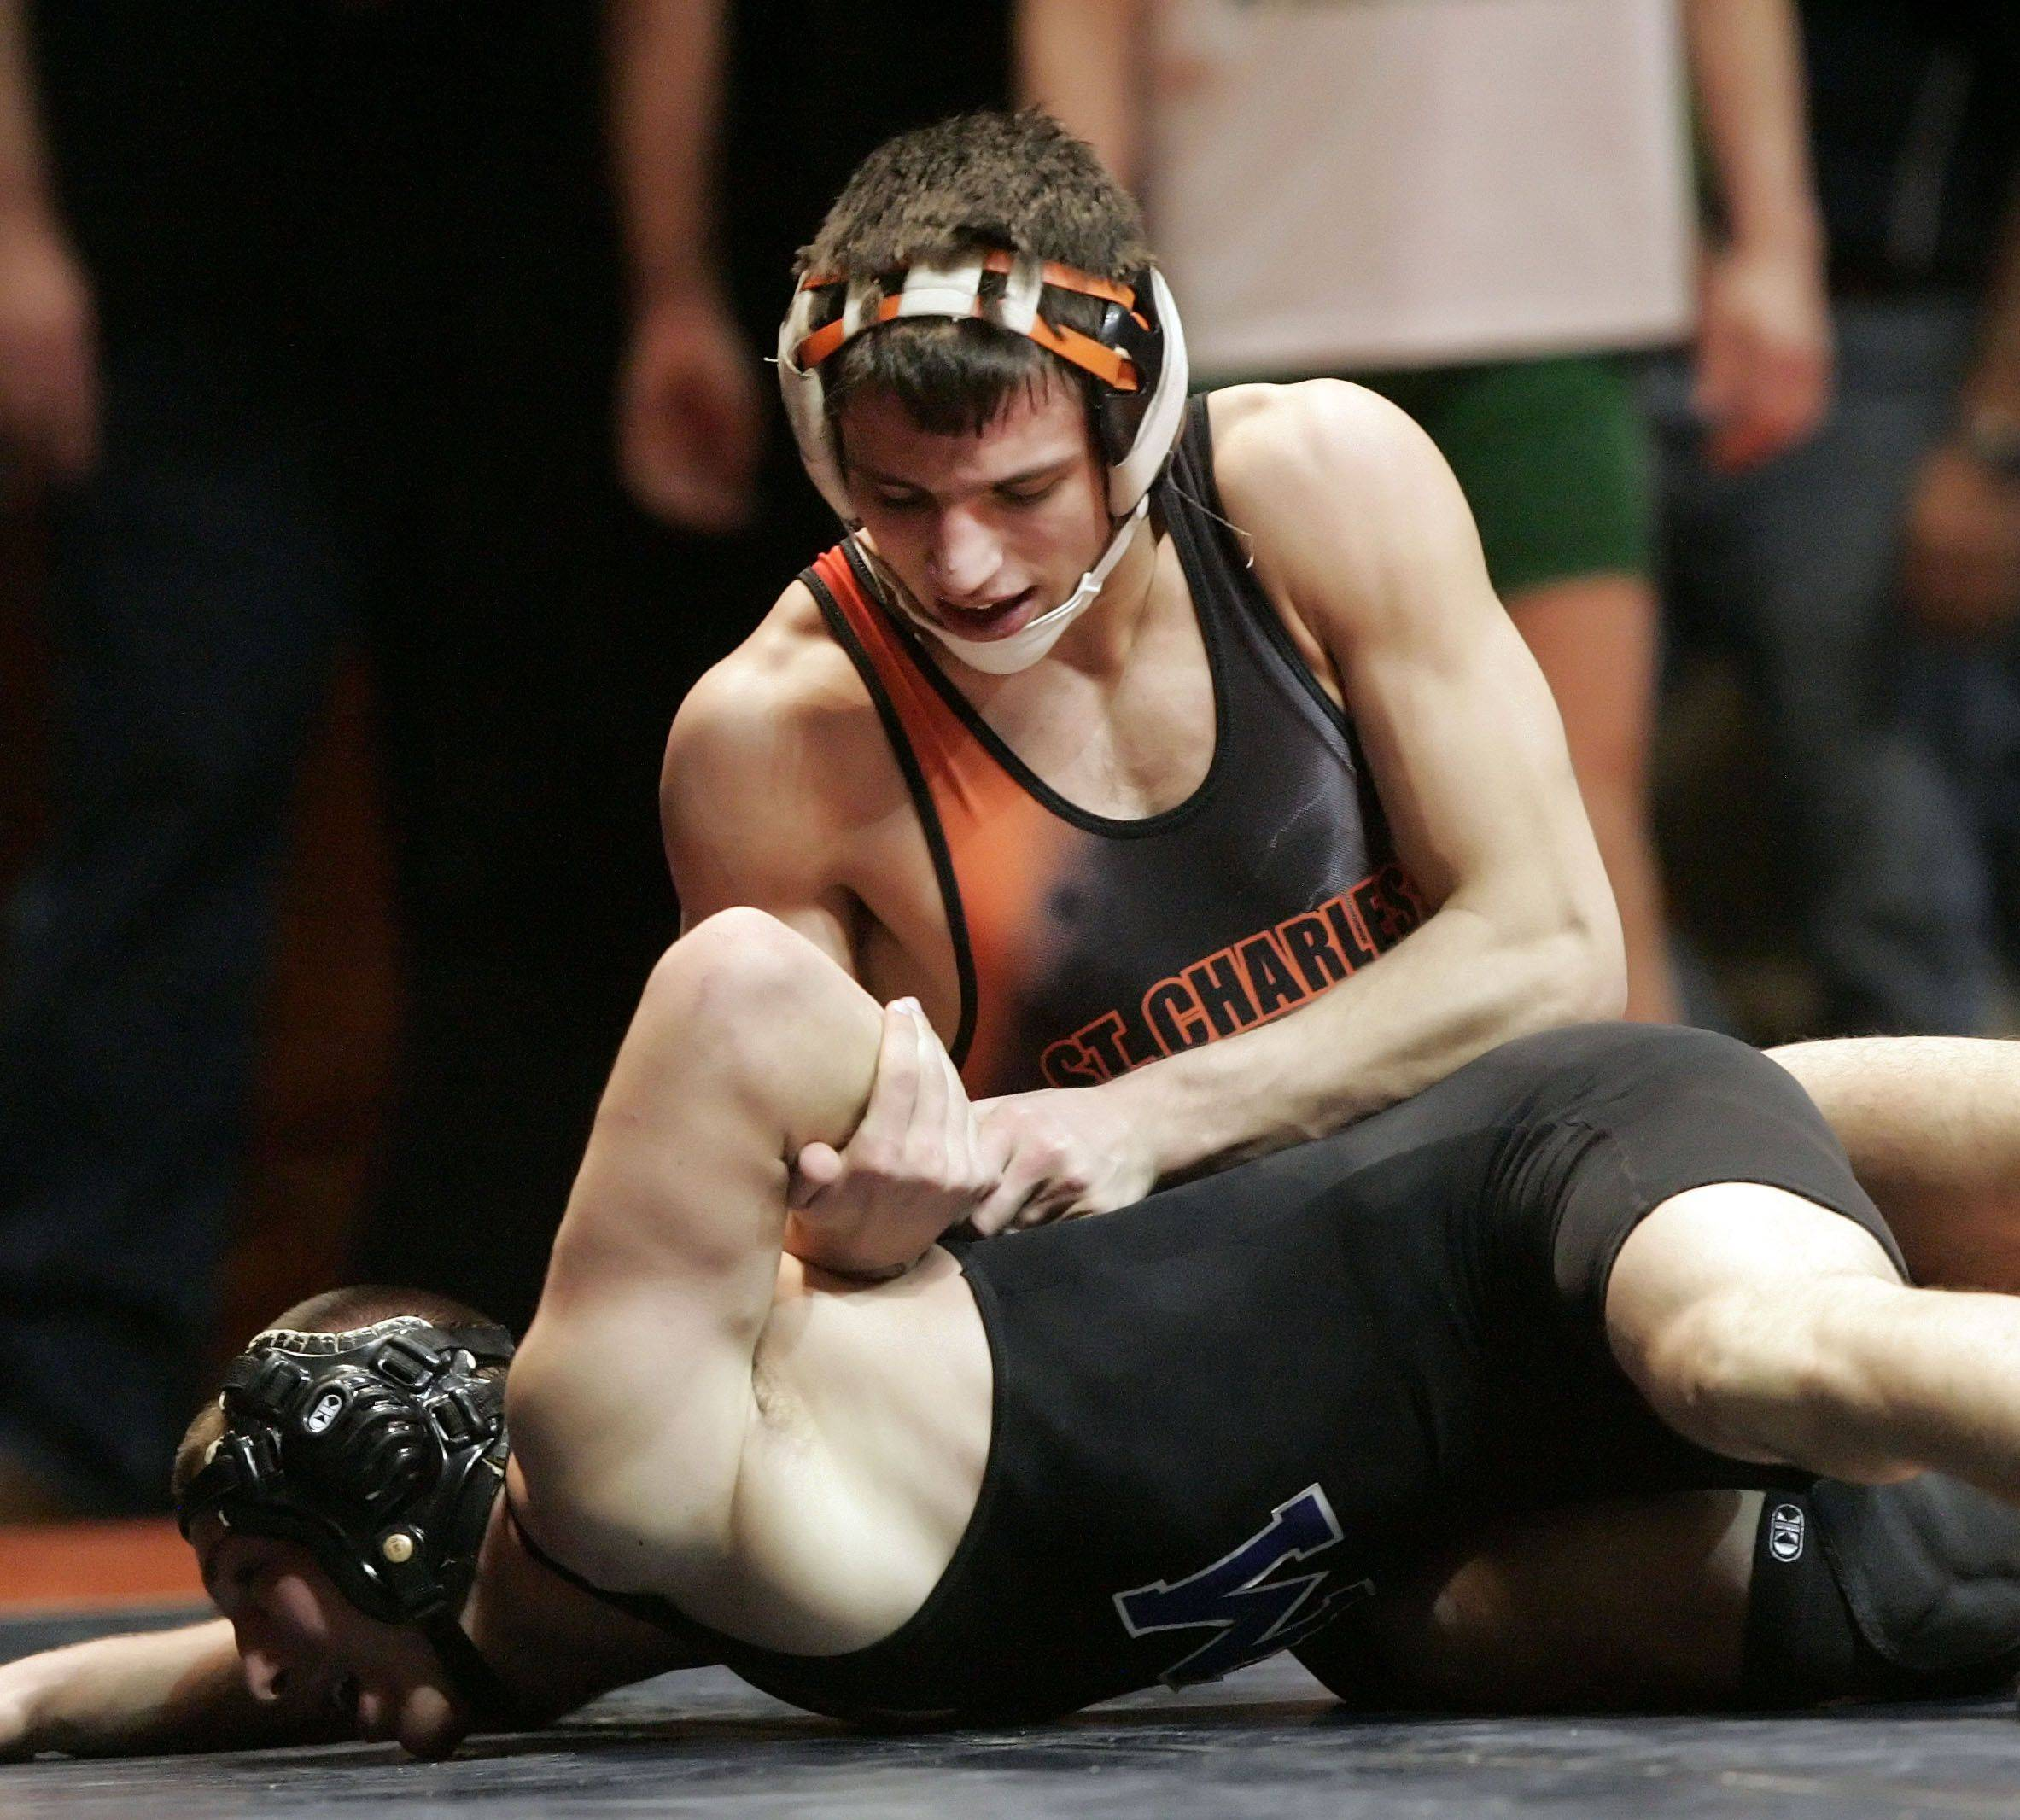 St. Charles East's Nick Ruffino wrestles Mather's Nikko Liotta at 130 pounds in the 3a wrestlesbacks during state wrestling Friday in Champaign.